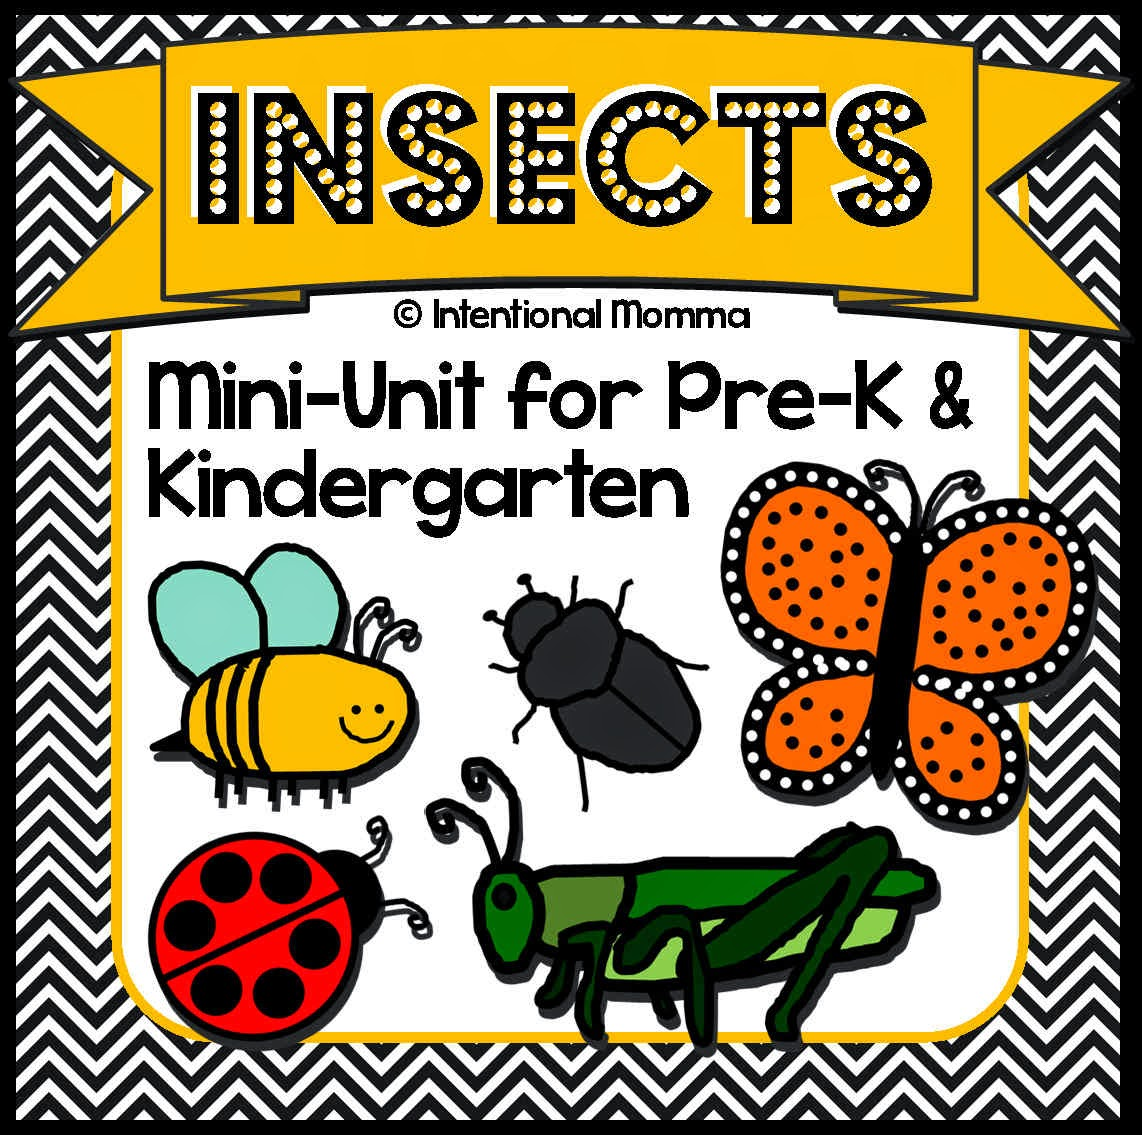 worksheets Pre-K kindergarten math numbers science unit printable